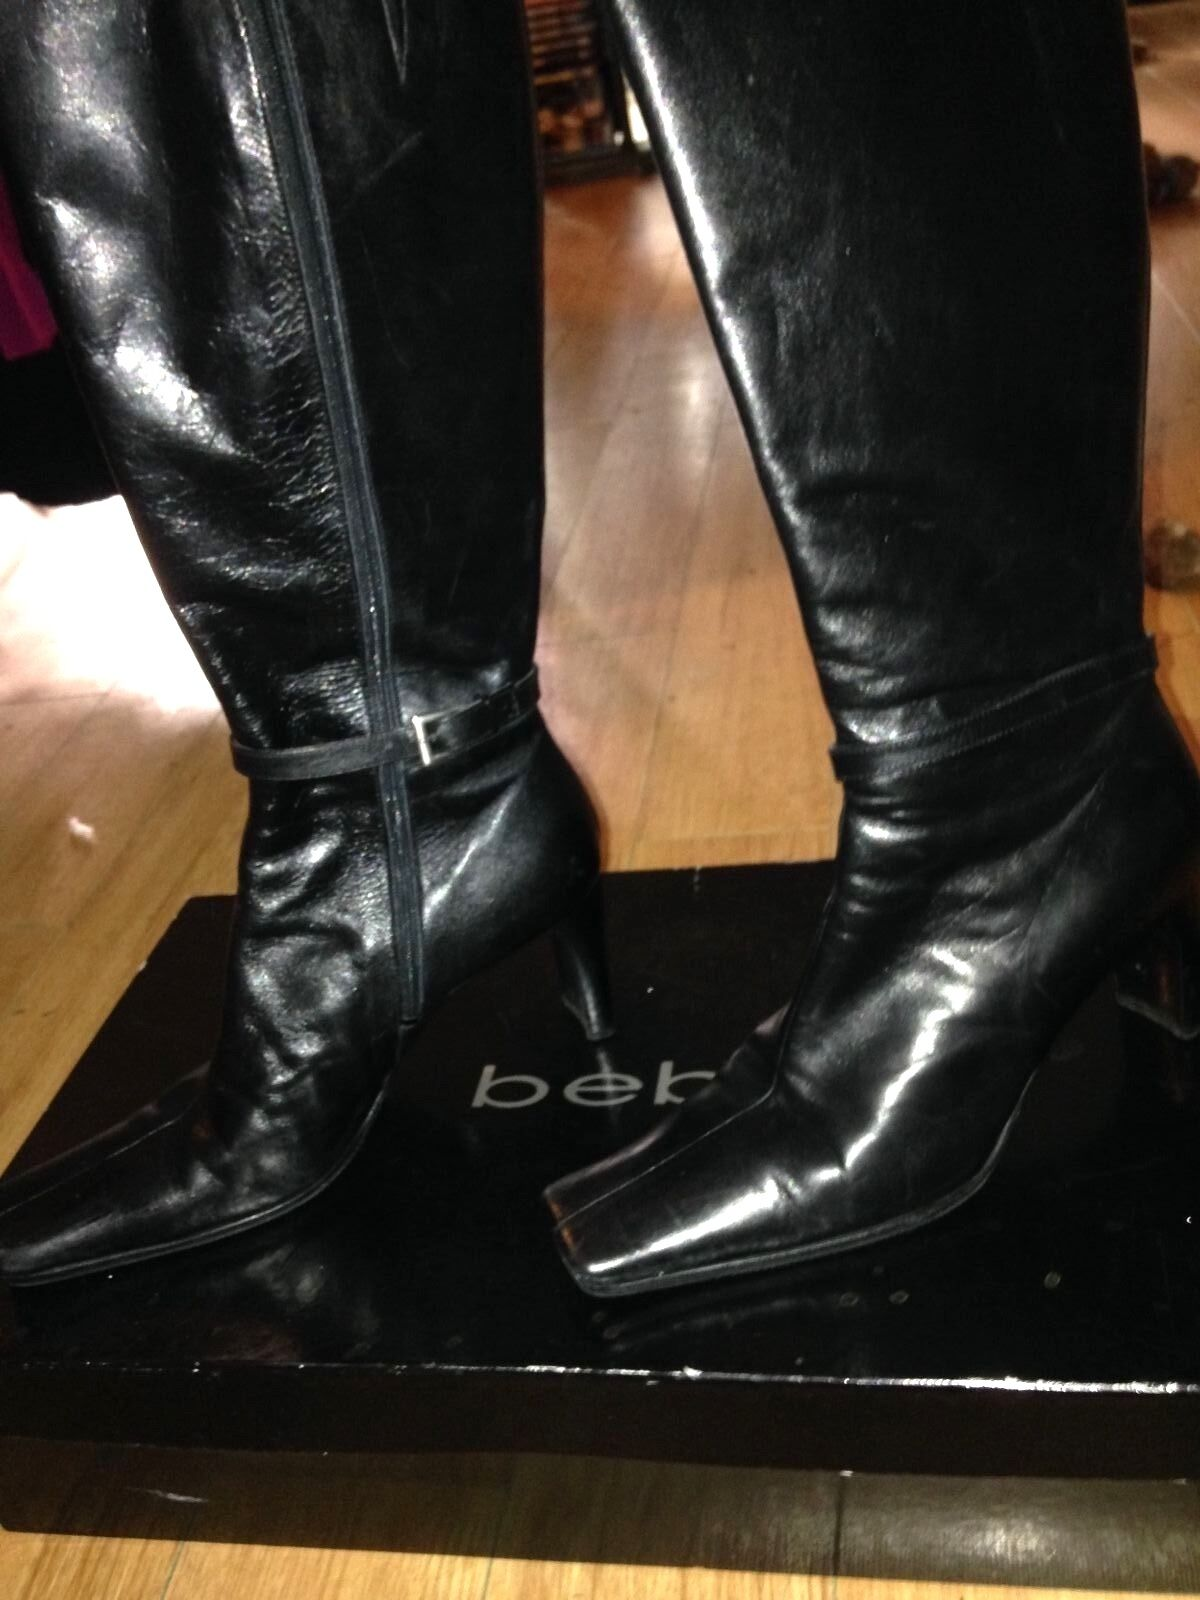 Bebe Black Shiny Patent Italian Leather Leather Leather Knee High Boots Aldo Quincy 8.5 58d4fd